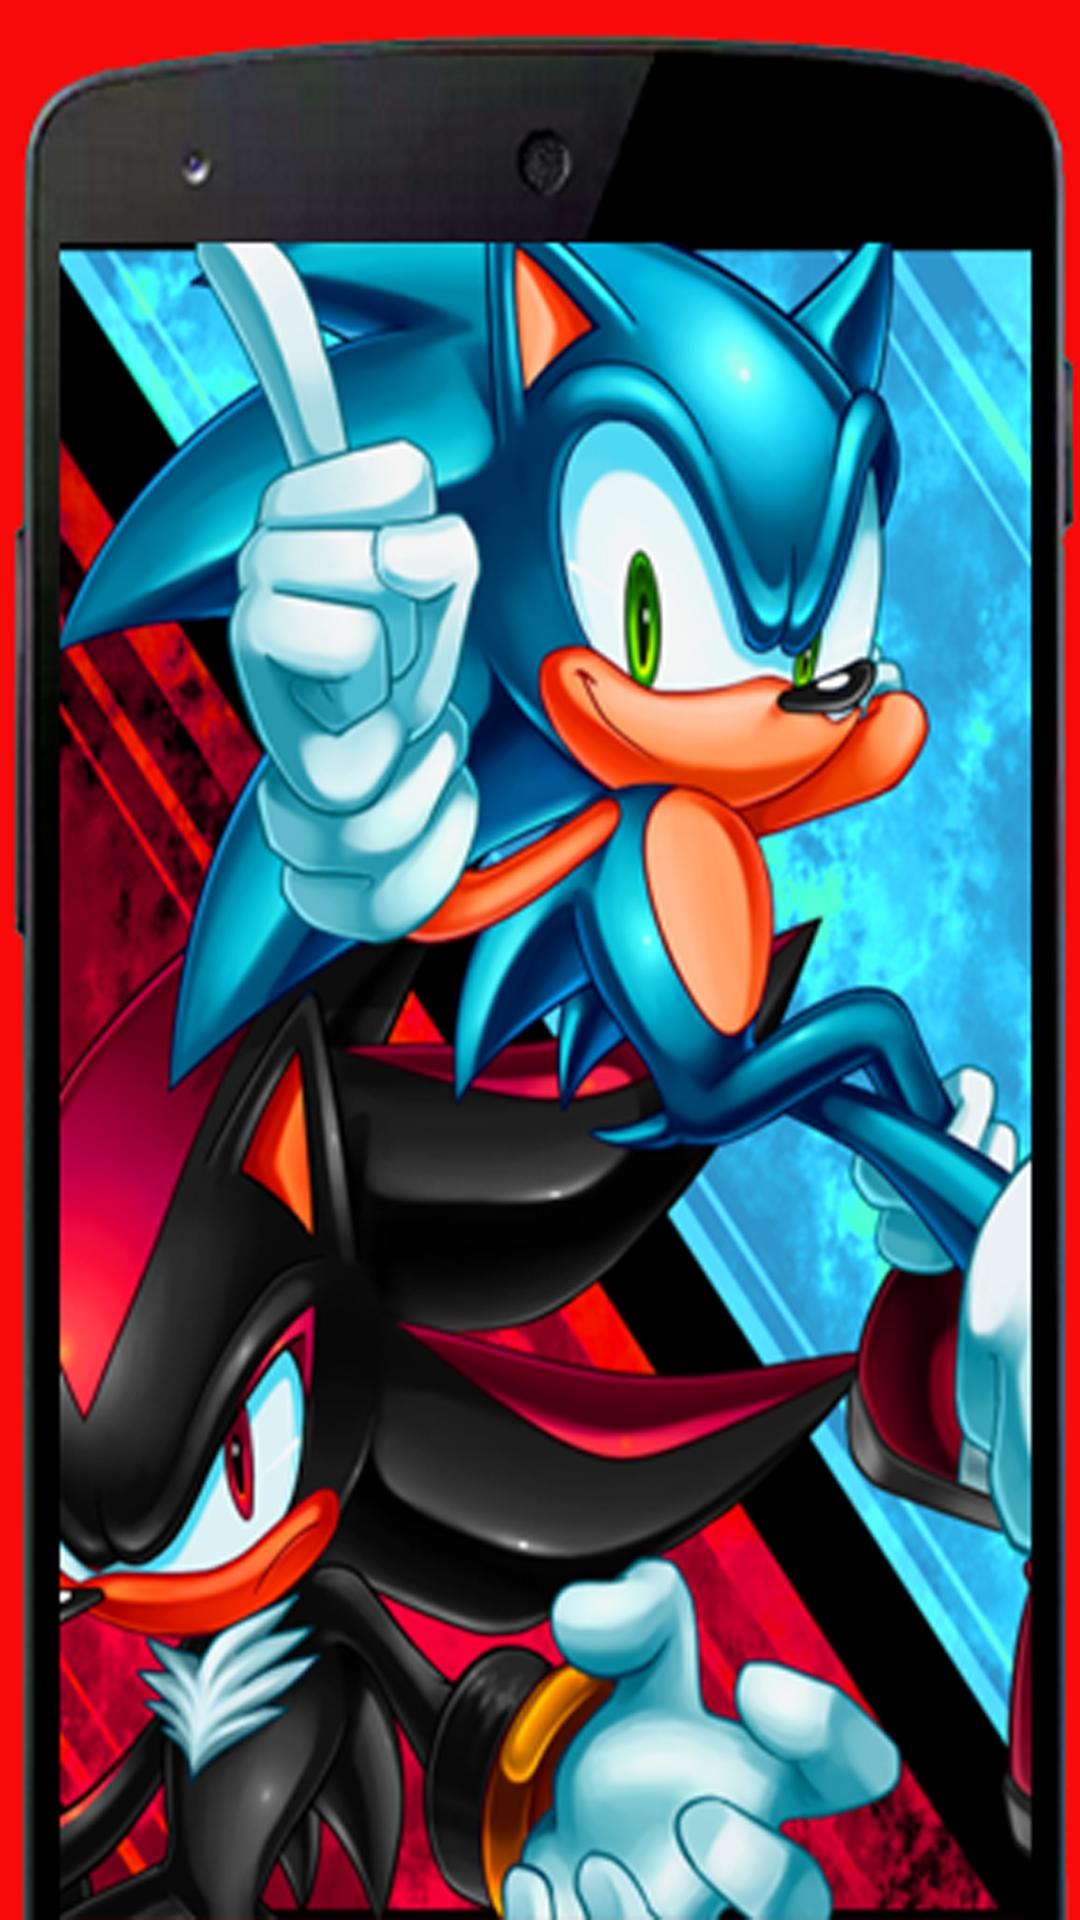 Wallpaper Sonic Hedgehog Dash Hd For Android Apk Download